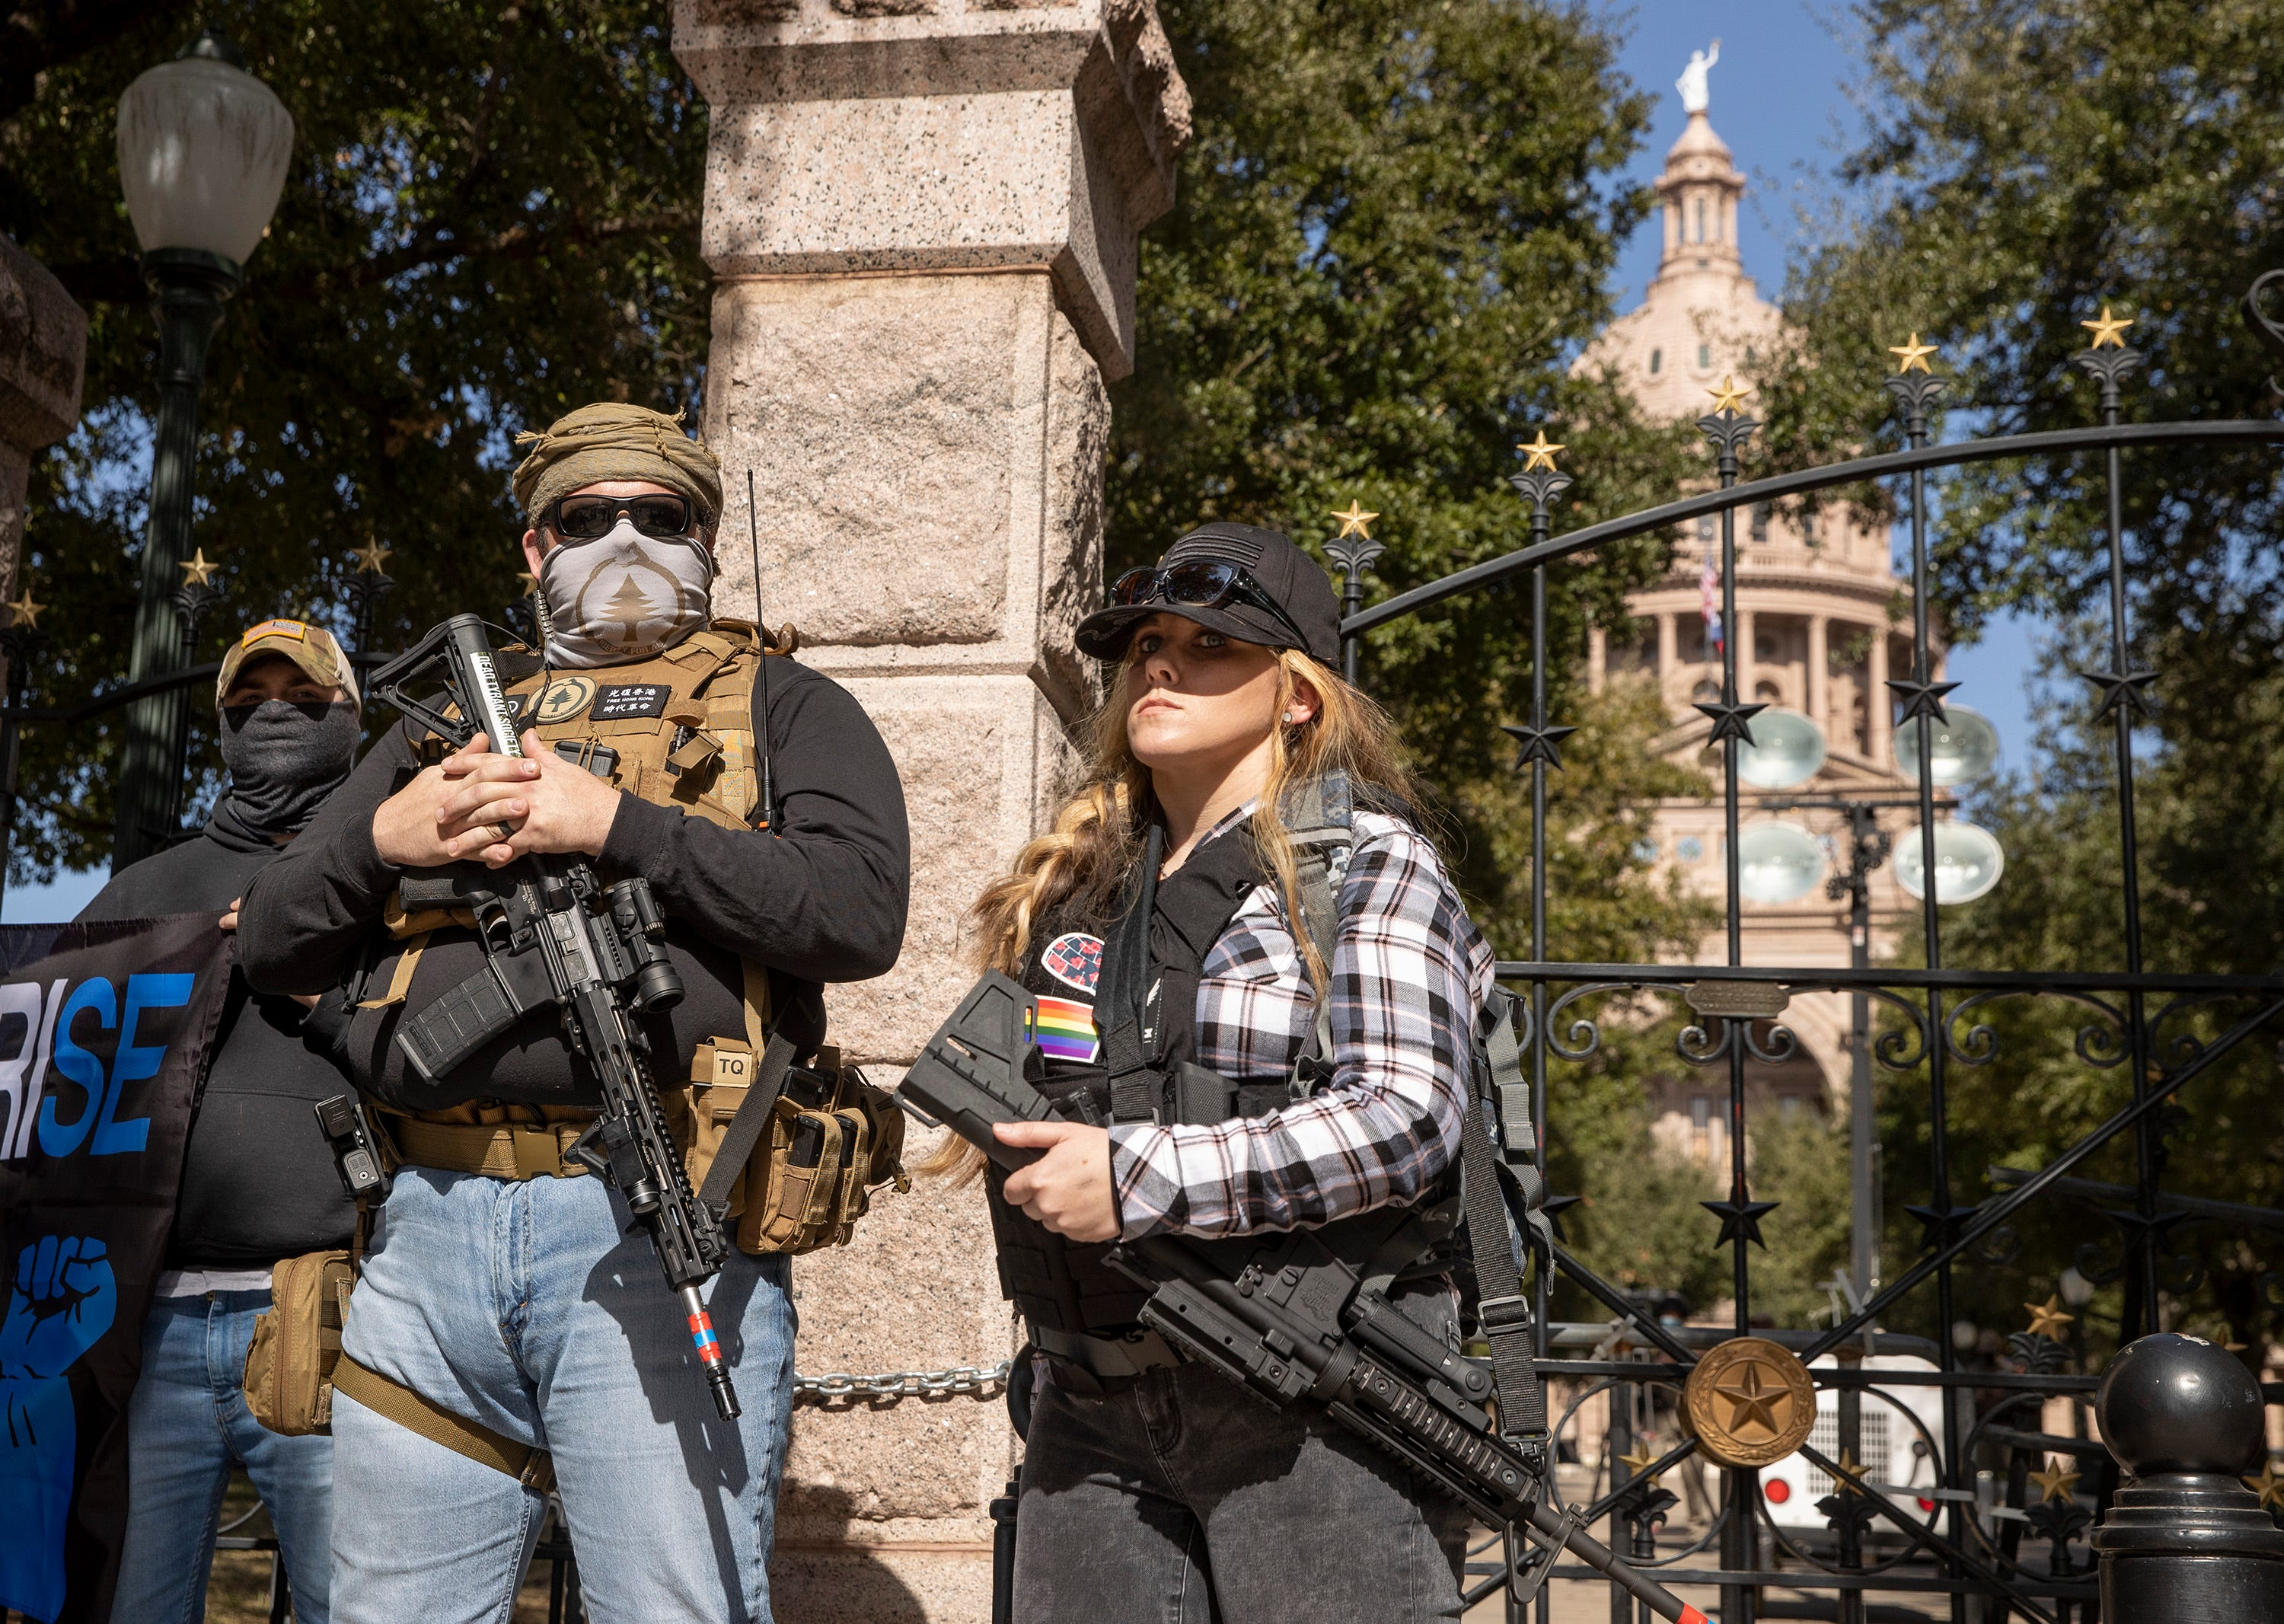 Jeinay LeBlanc, right, carries a gun while rallying for gun rights at the Capitol in Austin, Texas, on Sunday, Jan. 17, 2021.